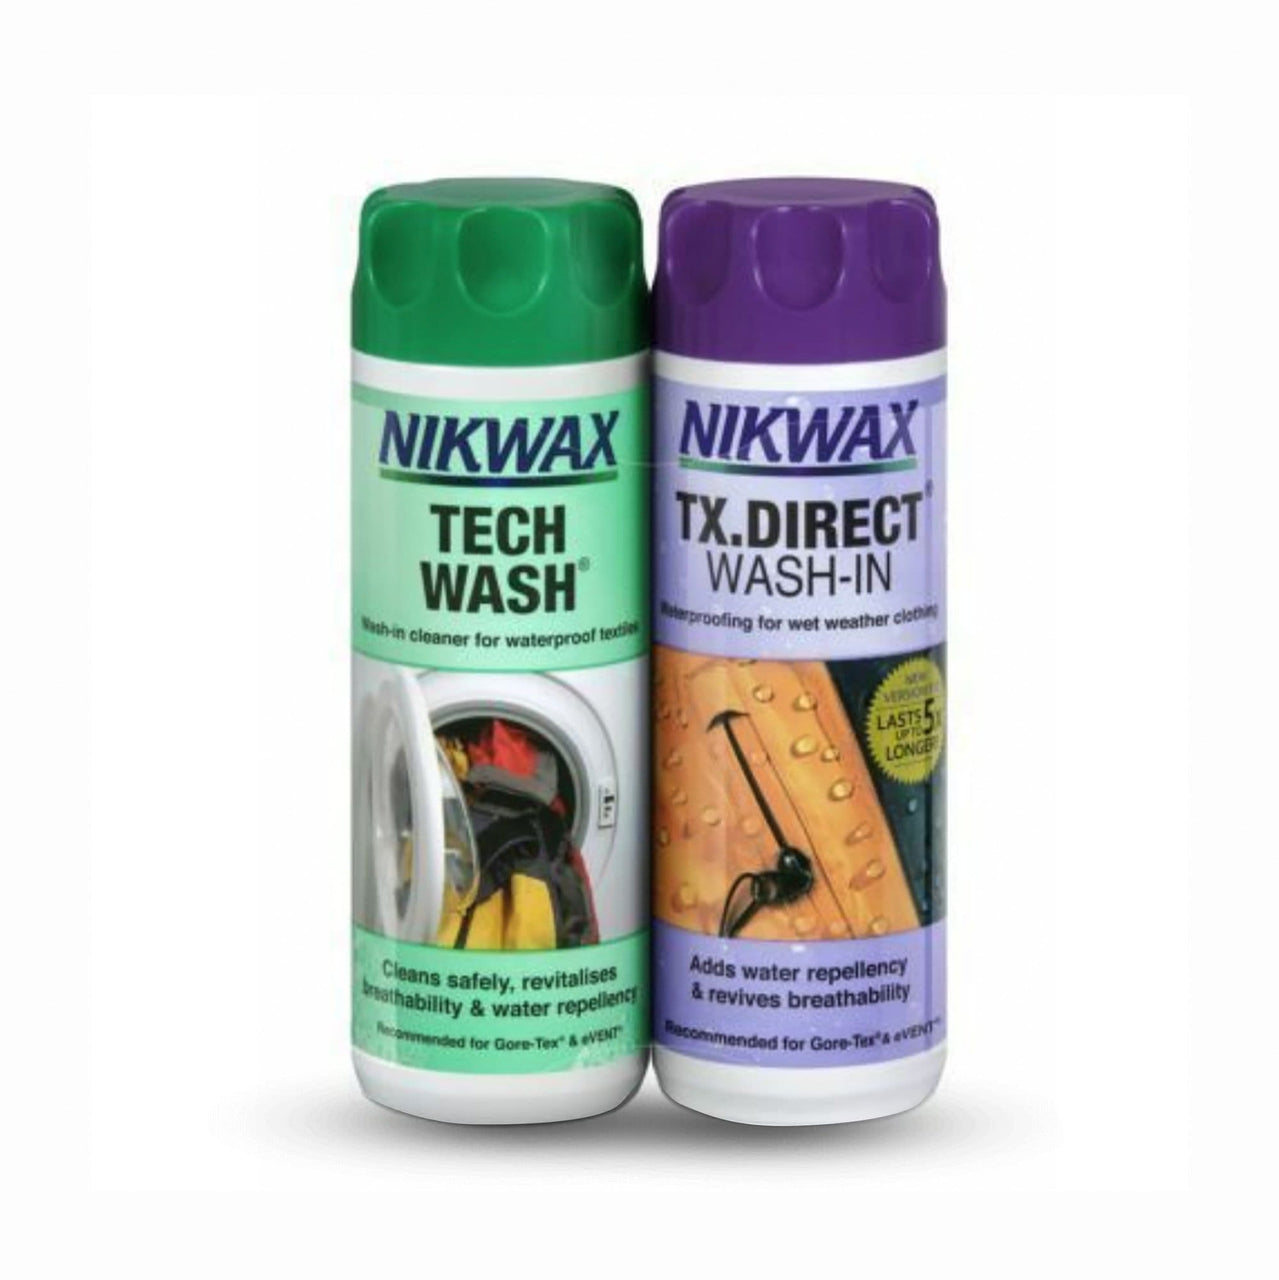 Nikwax Twin Tech Wash / TX Direct